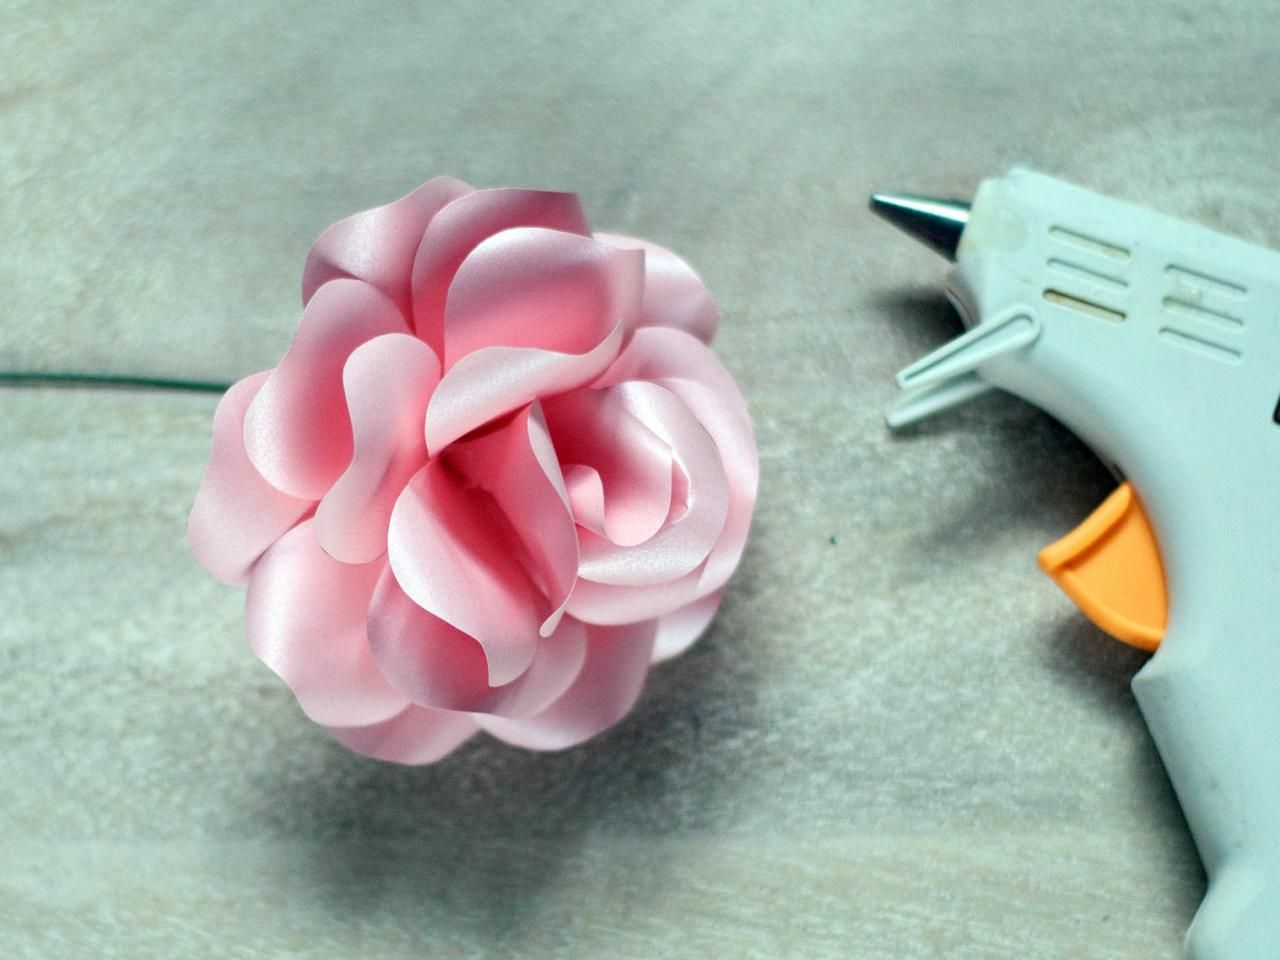 How To Make Paper Roses Template Flower And Rose Diagram Origami By Flowers With Diy Networks Free Downloadable Templates Instructions